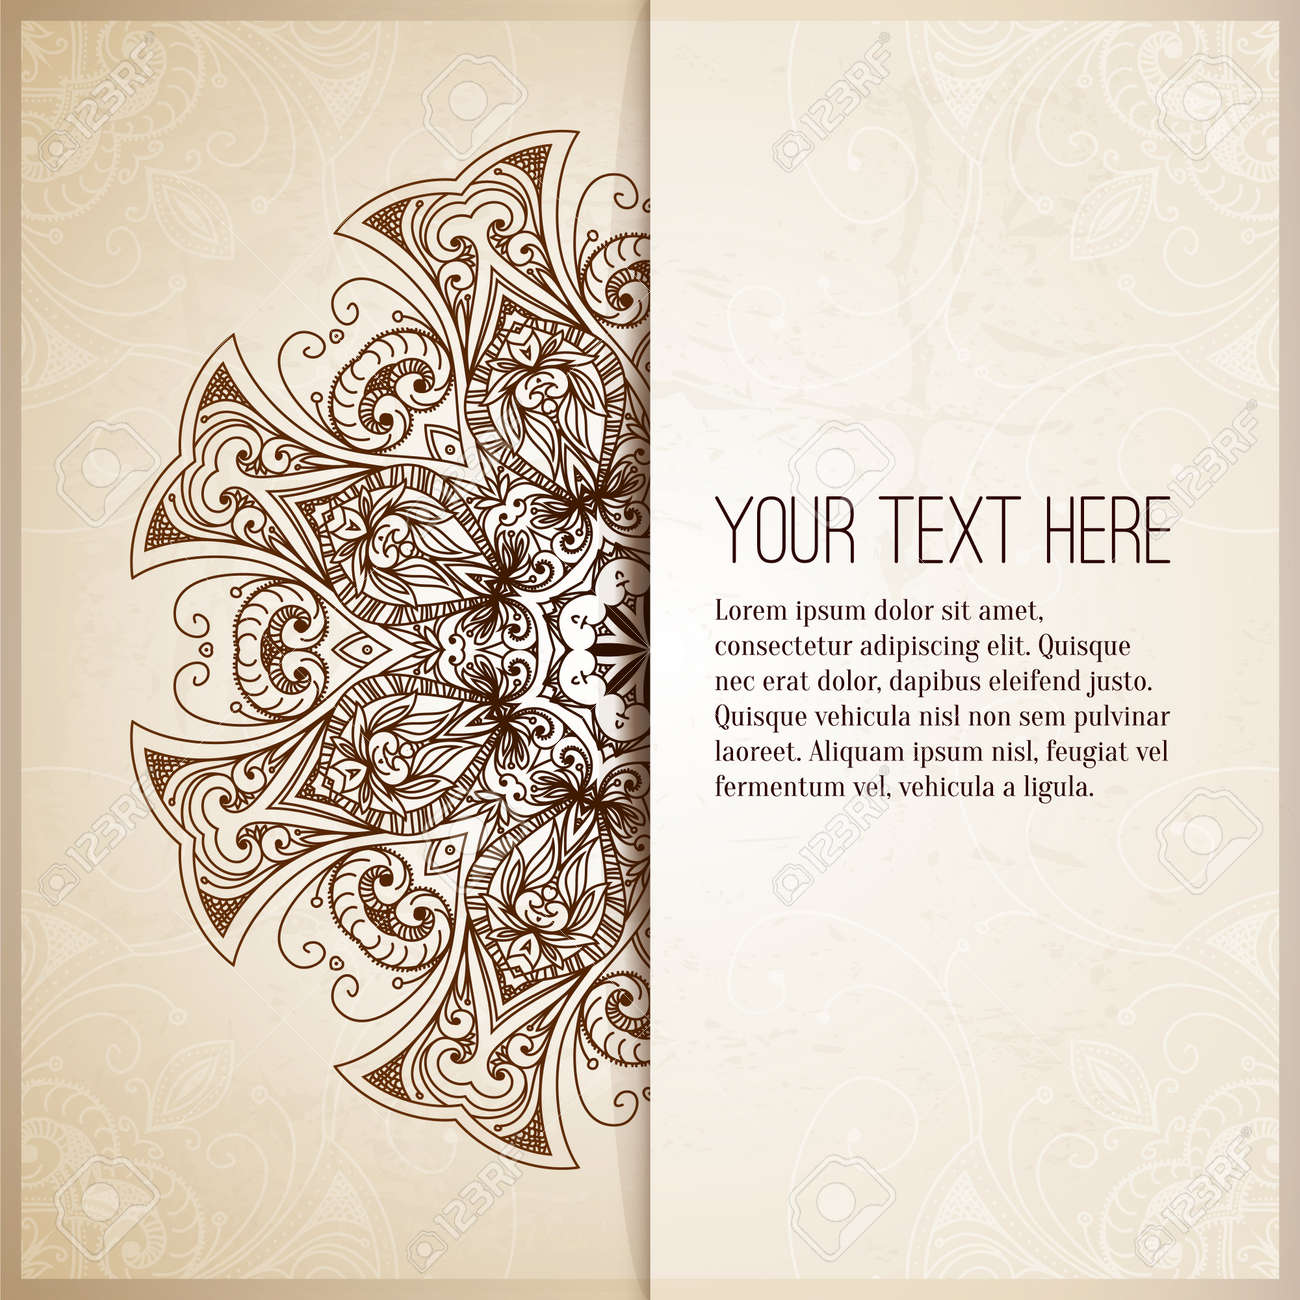 Vintage Background Retro Greeting Card Invitation With Lace